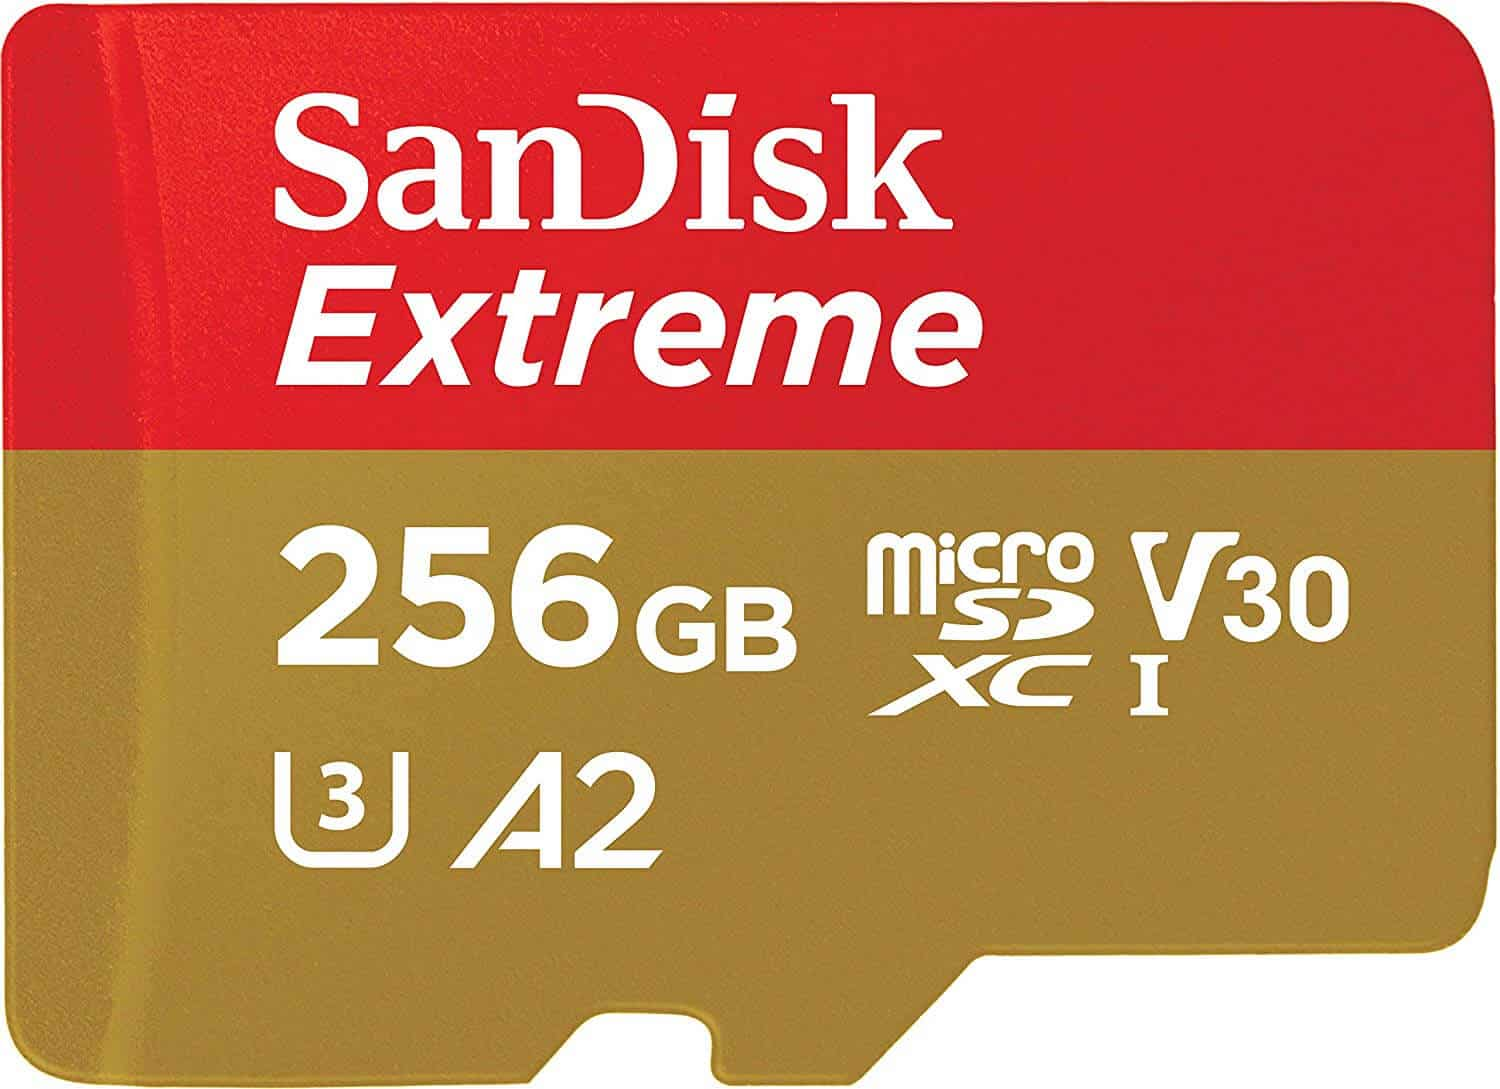 Best SD Cards for Samsung Galaxy S10 - SanDisk Extreme MicroSDXC